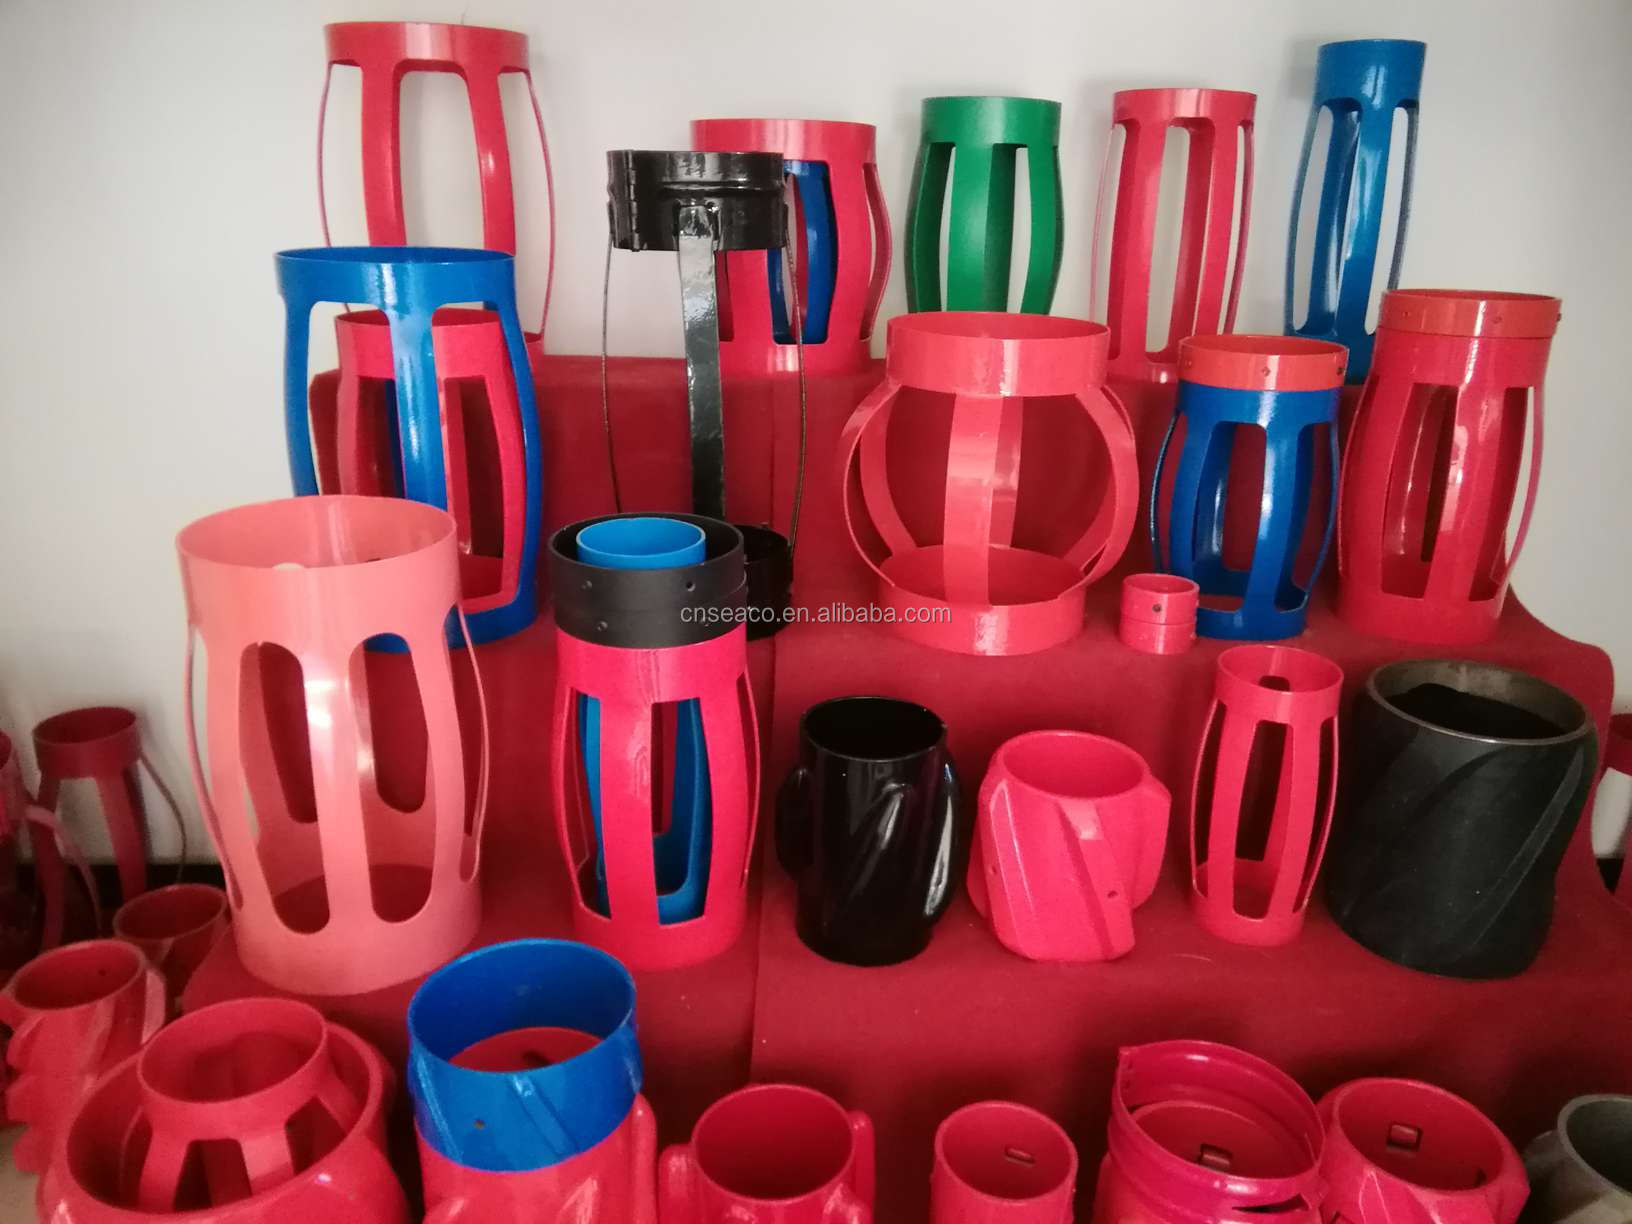 API Rigid Casing centralizer,Aluminum Alloy Rigid Casing Centralizer 5 1/2''-13 3/8""